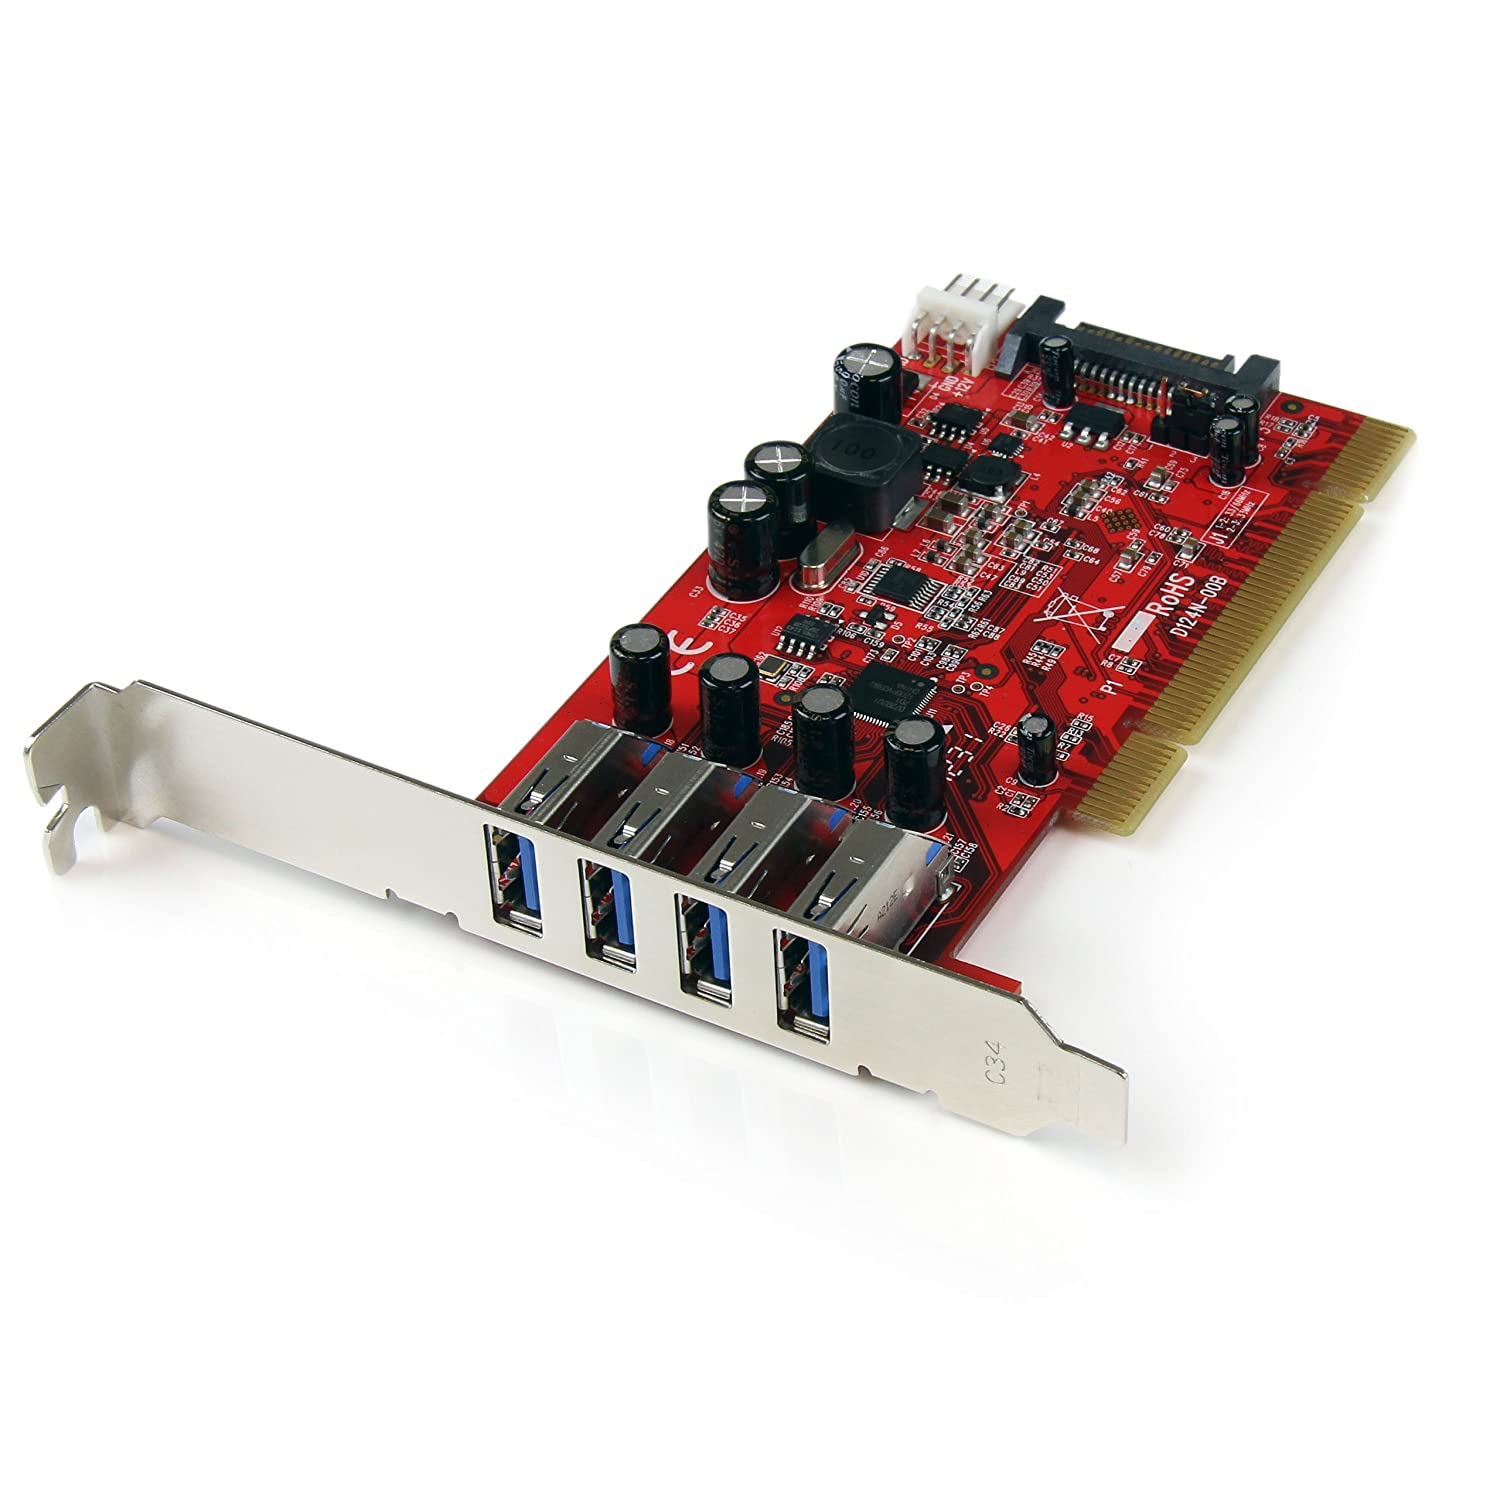 StarTech.com 4 Port PCI SuperSpeed USB 3.0 Adapter Card with SATA/SP4 Power - Quad Port PCI USB 3 Controller Card